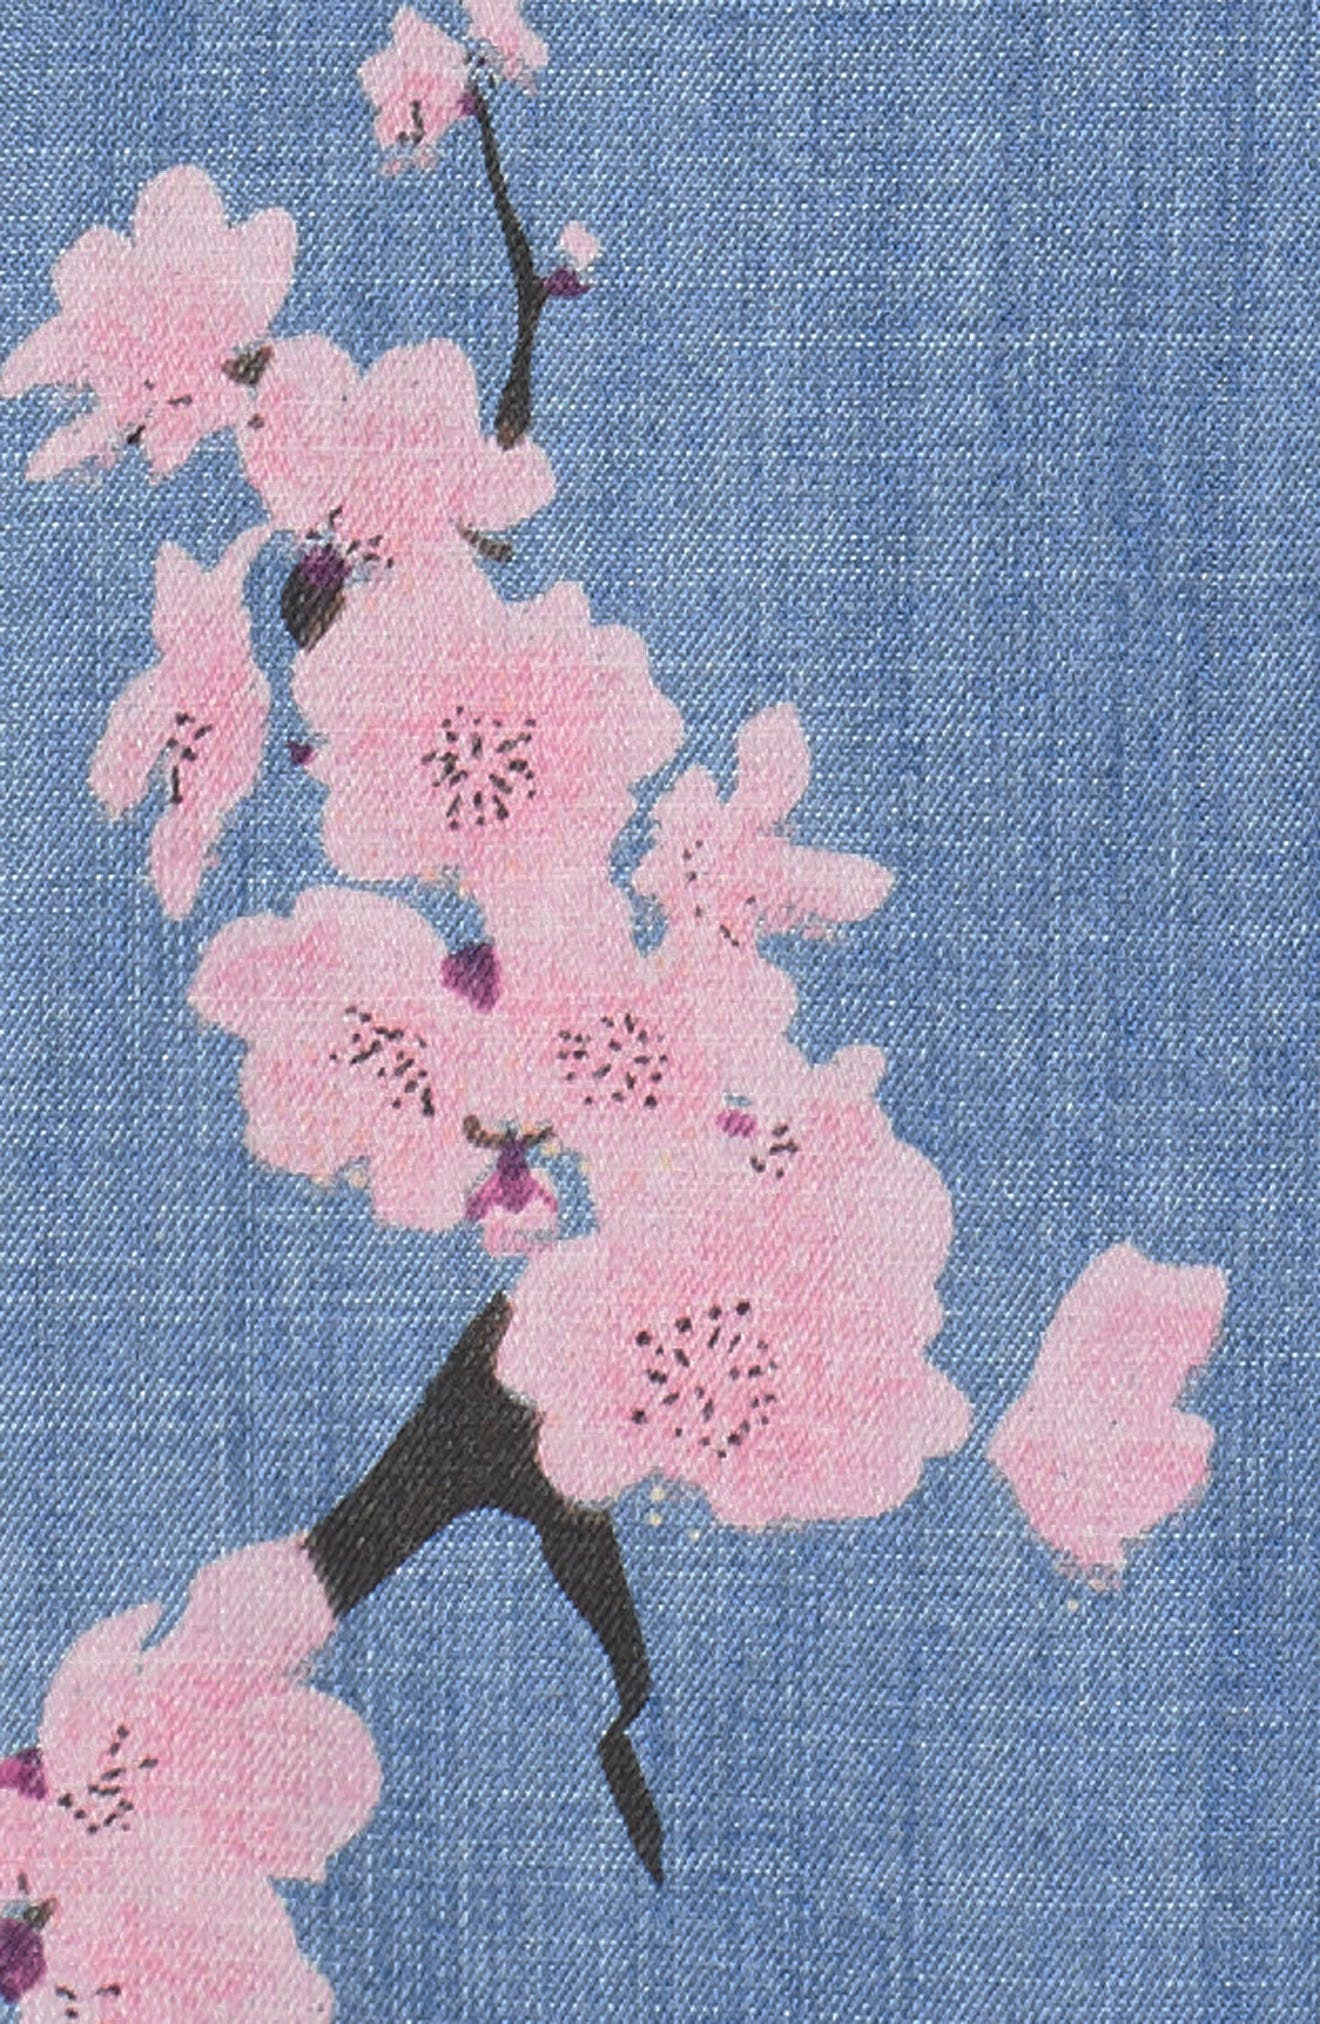 Cherry Blossom Shift Dress,                             Alternate thumbnail 6, color,                             Blue Cherry Blossom